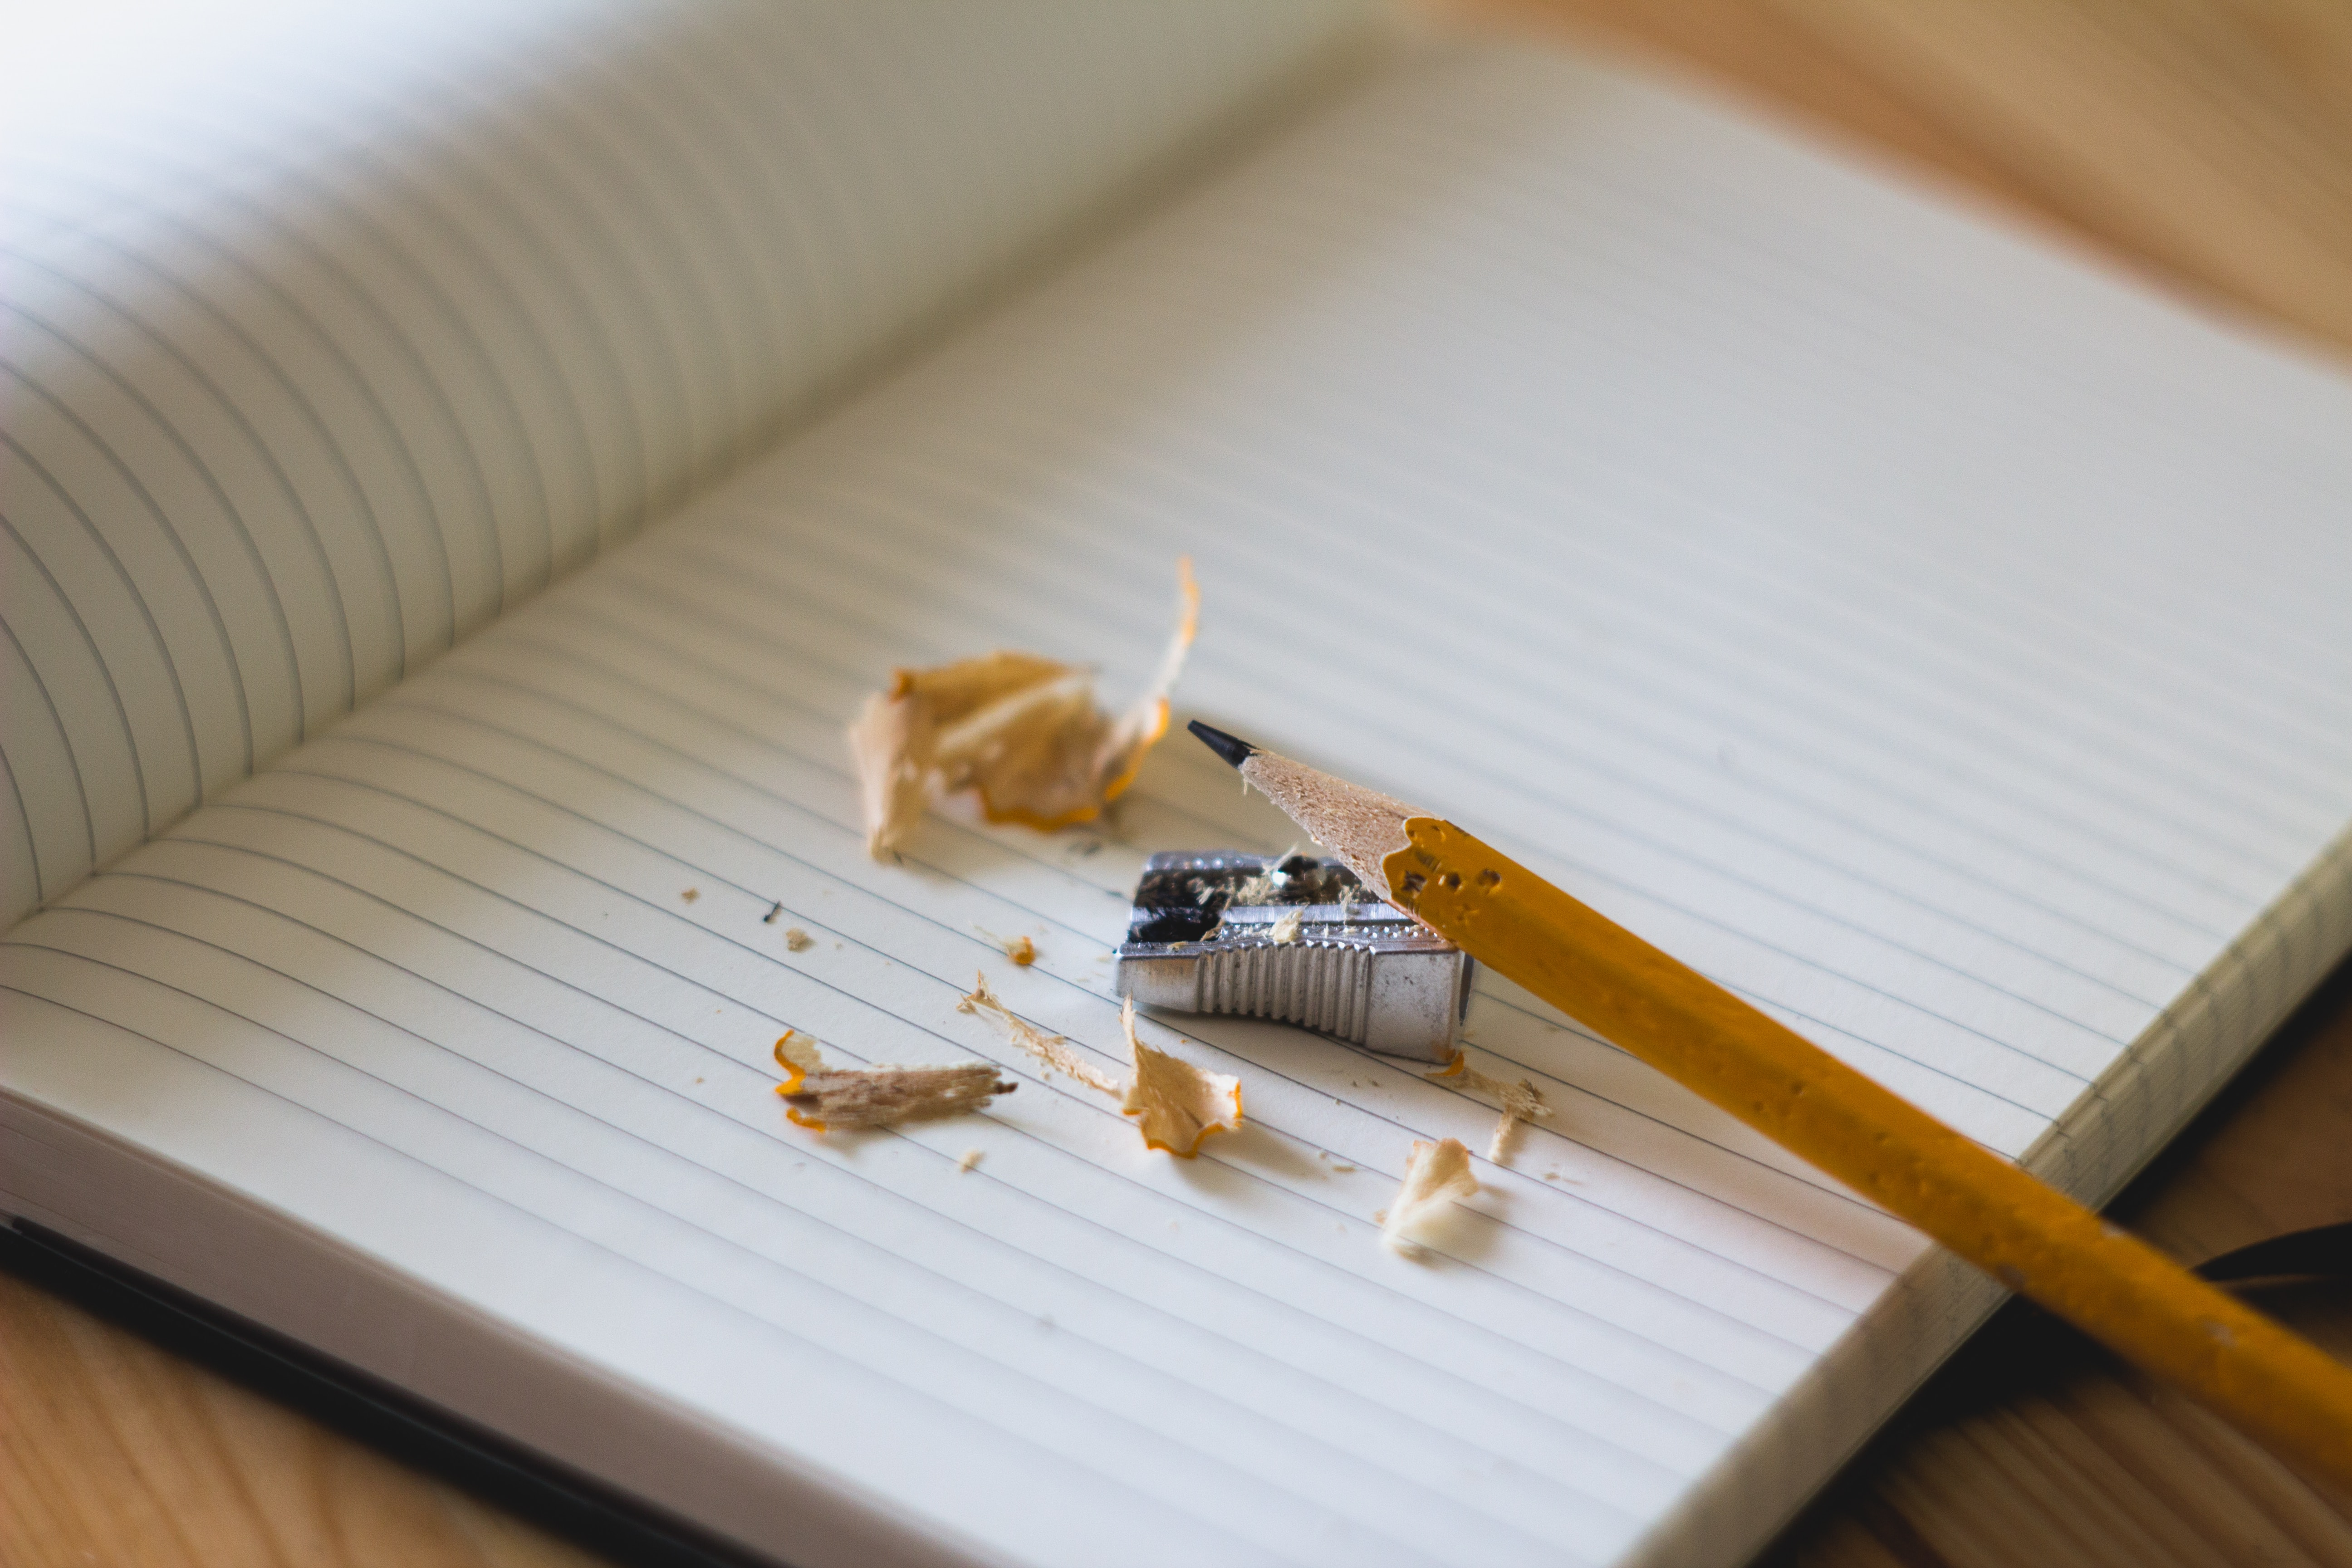 Pencil shavings on a blank piece of notebook paper.